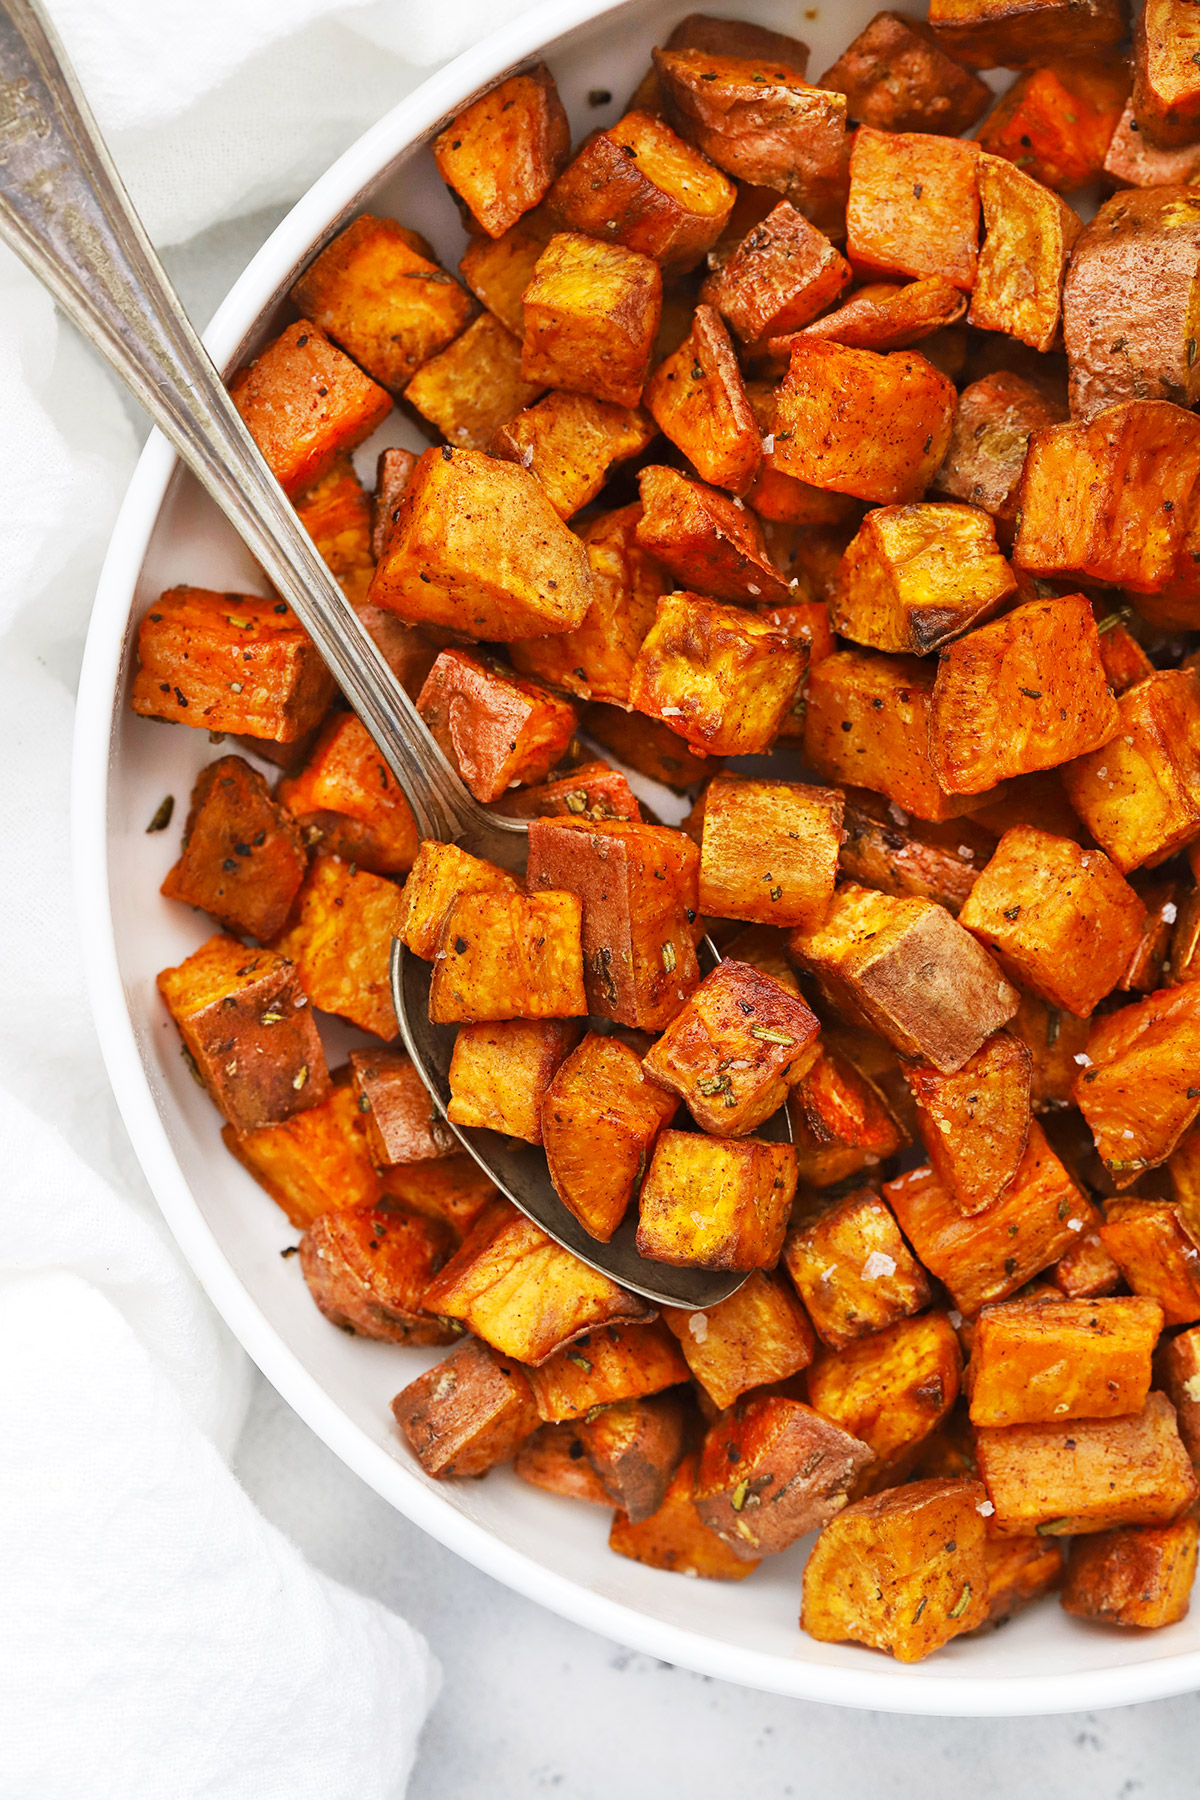 Close up Overhead view of Cinnamon Rosemary Sweet Potatoes in a white bowl on a white background